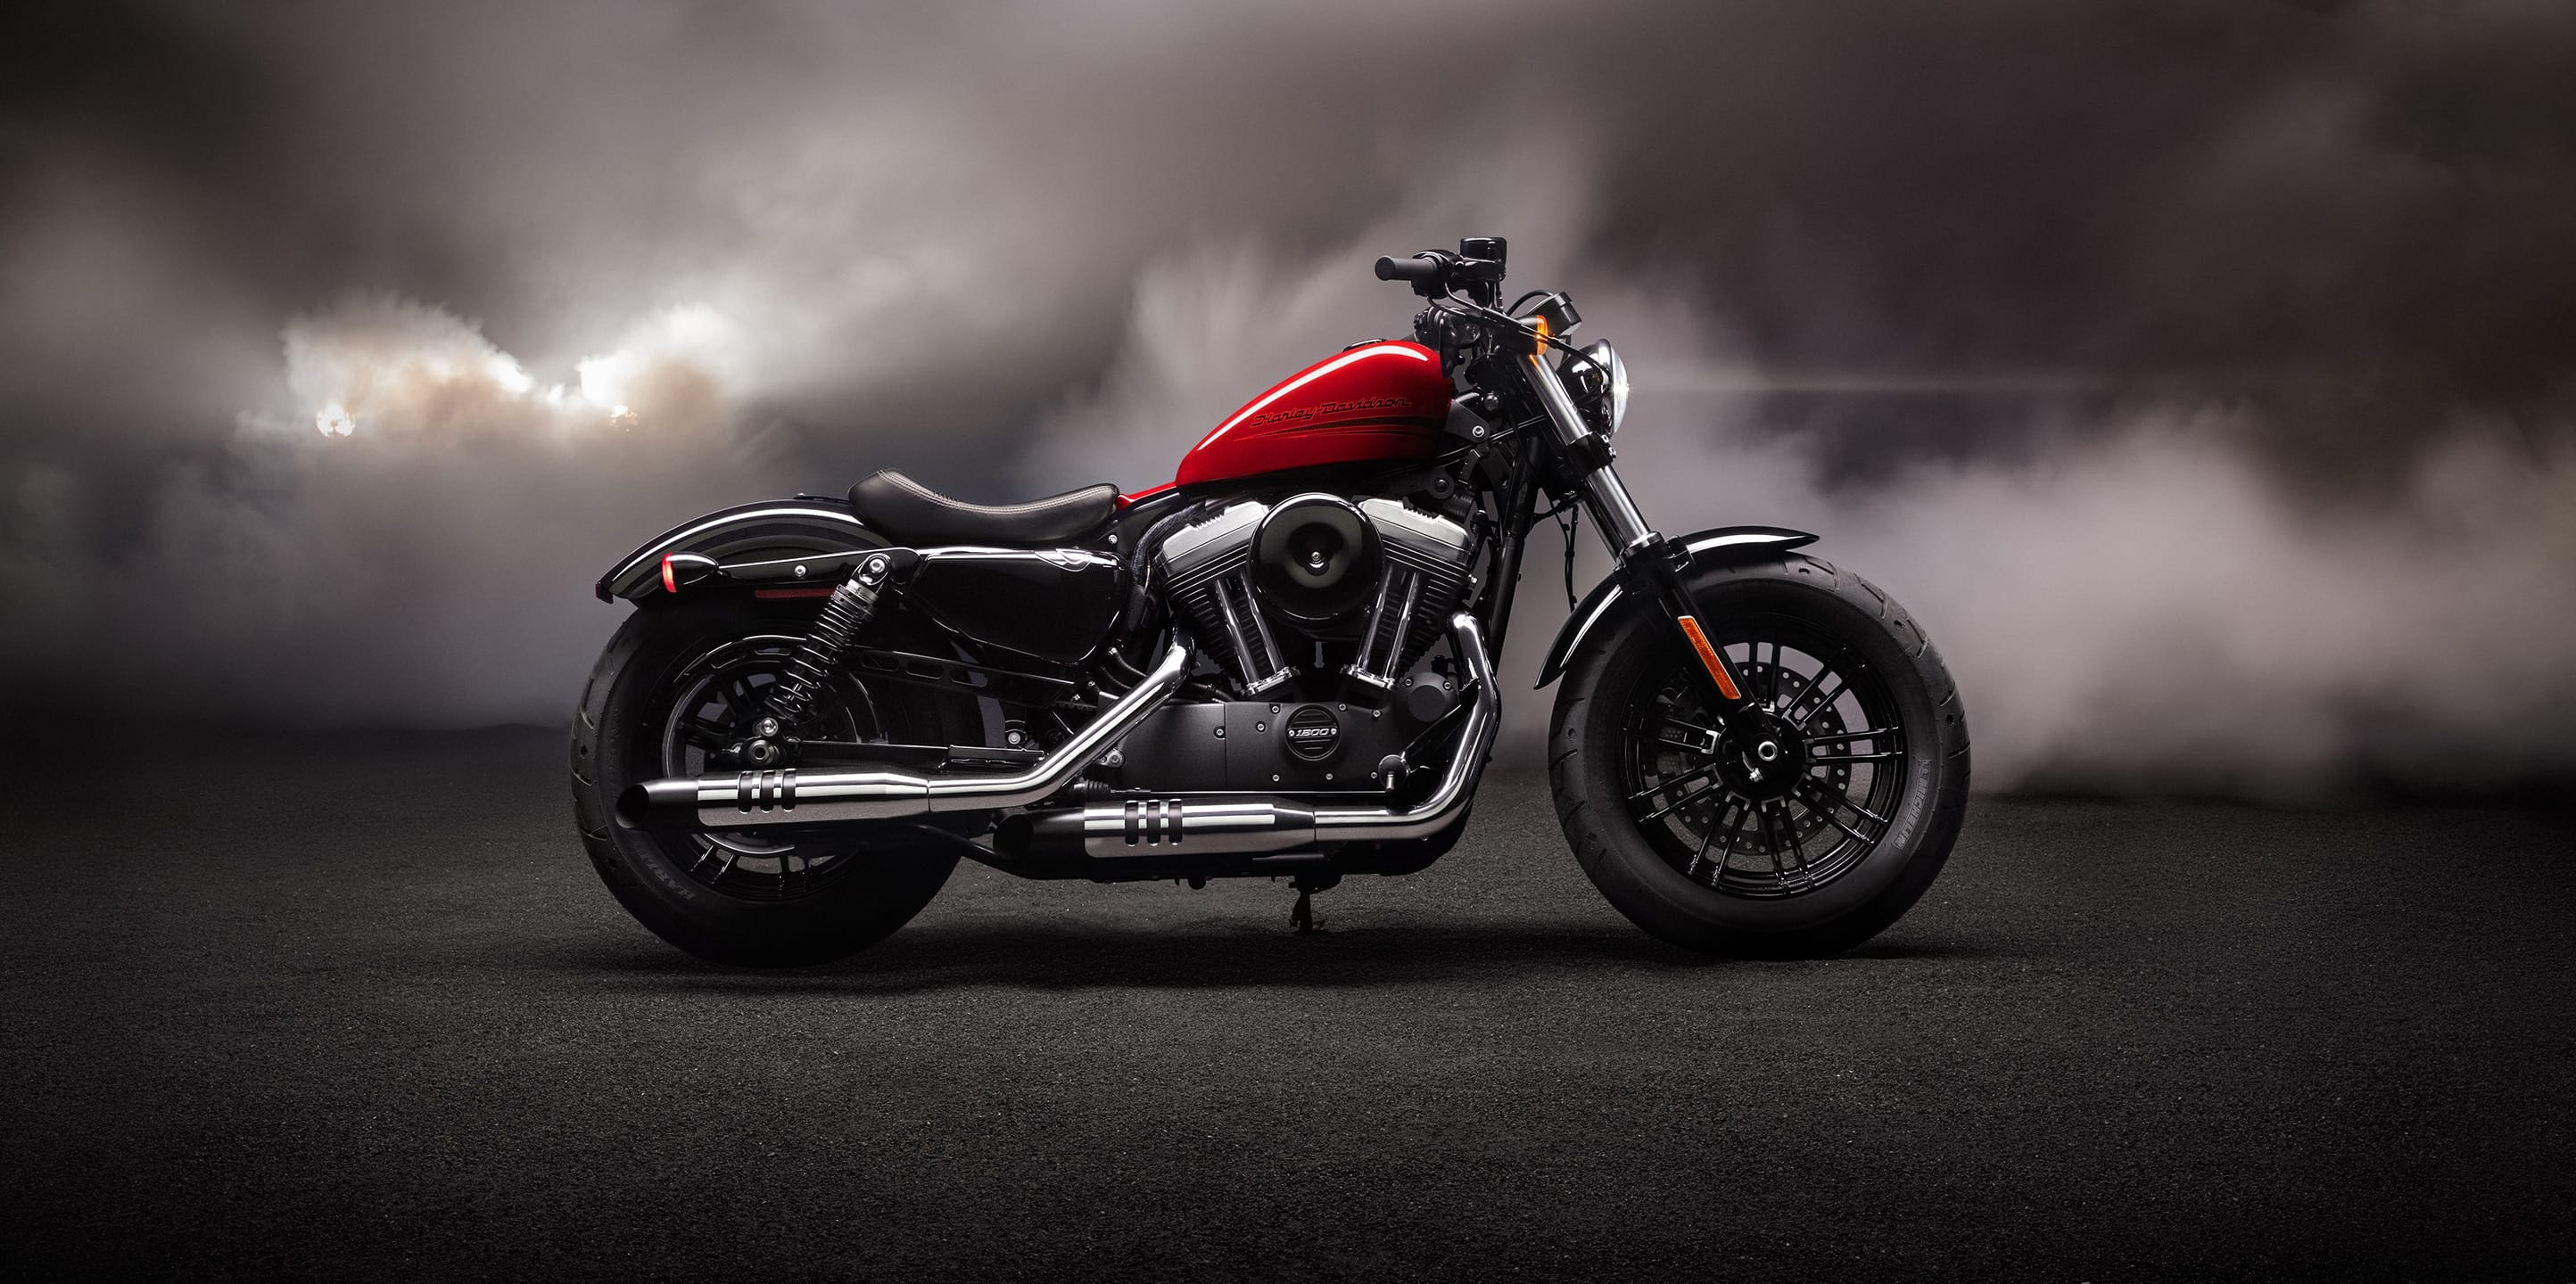 Harley Davidson 2020 Forty Eight For Sale At Sy S Harley Davidson In Campbelltown Nsw Specifications And Review Information